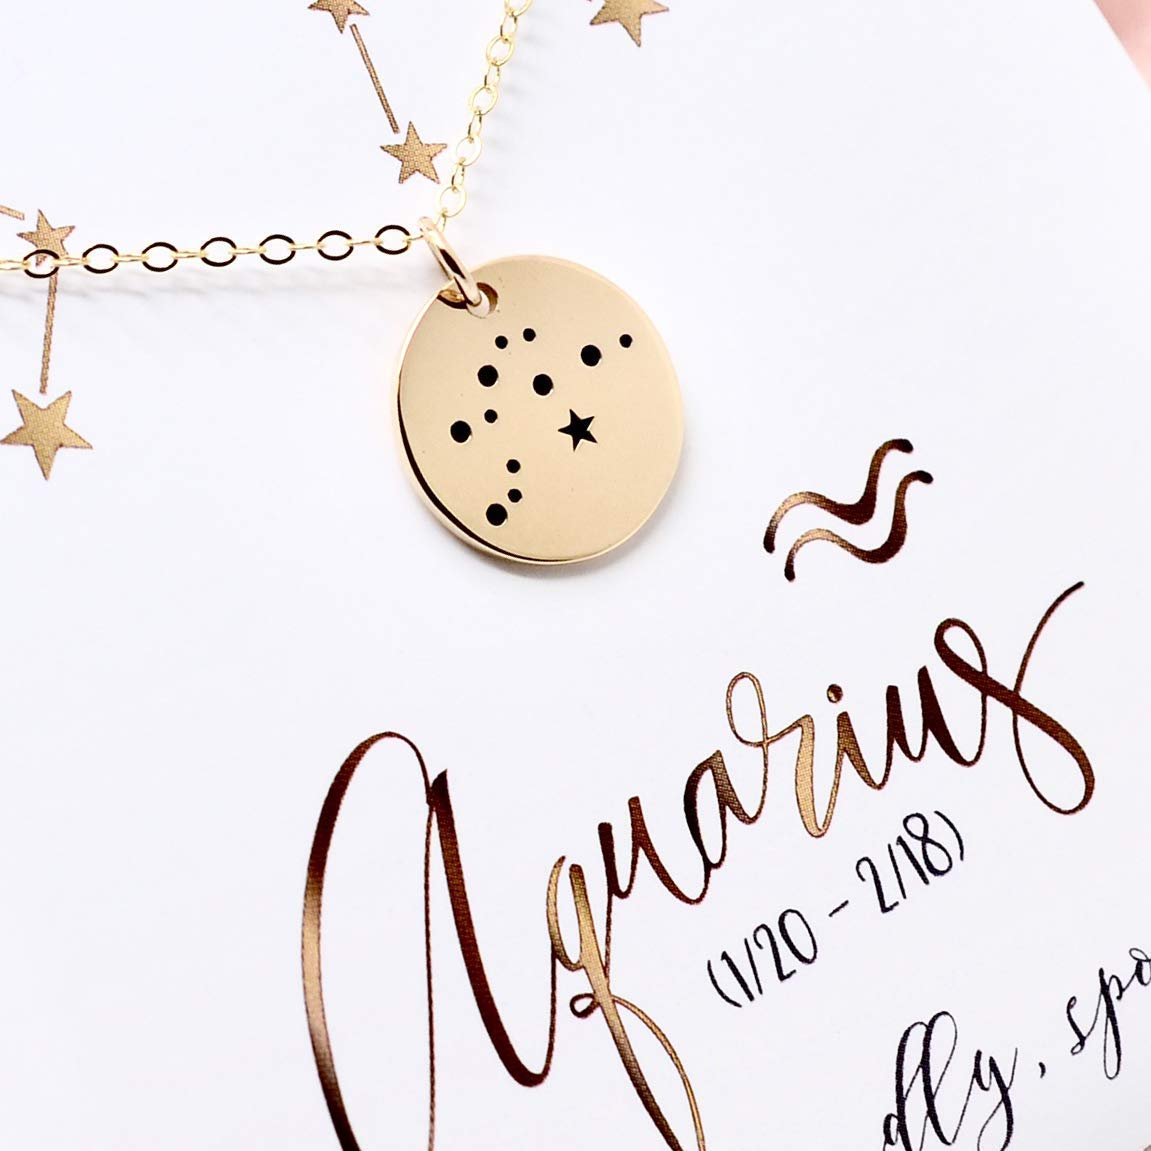 Aquarius Zodiac Sign 14K Gold Filled Constellation Necklace - Love It Personalized